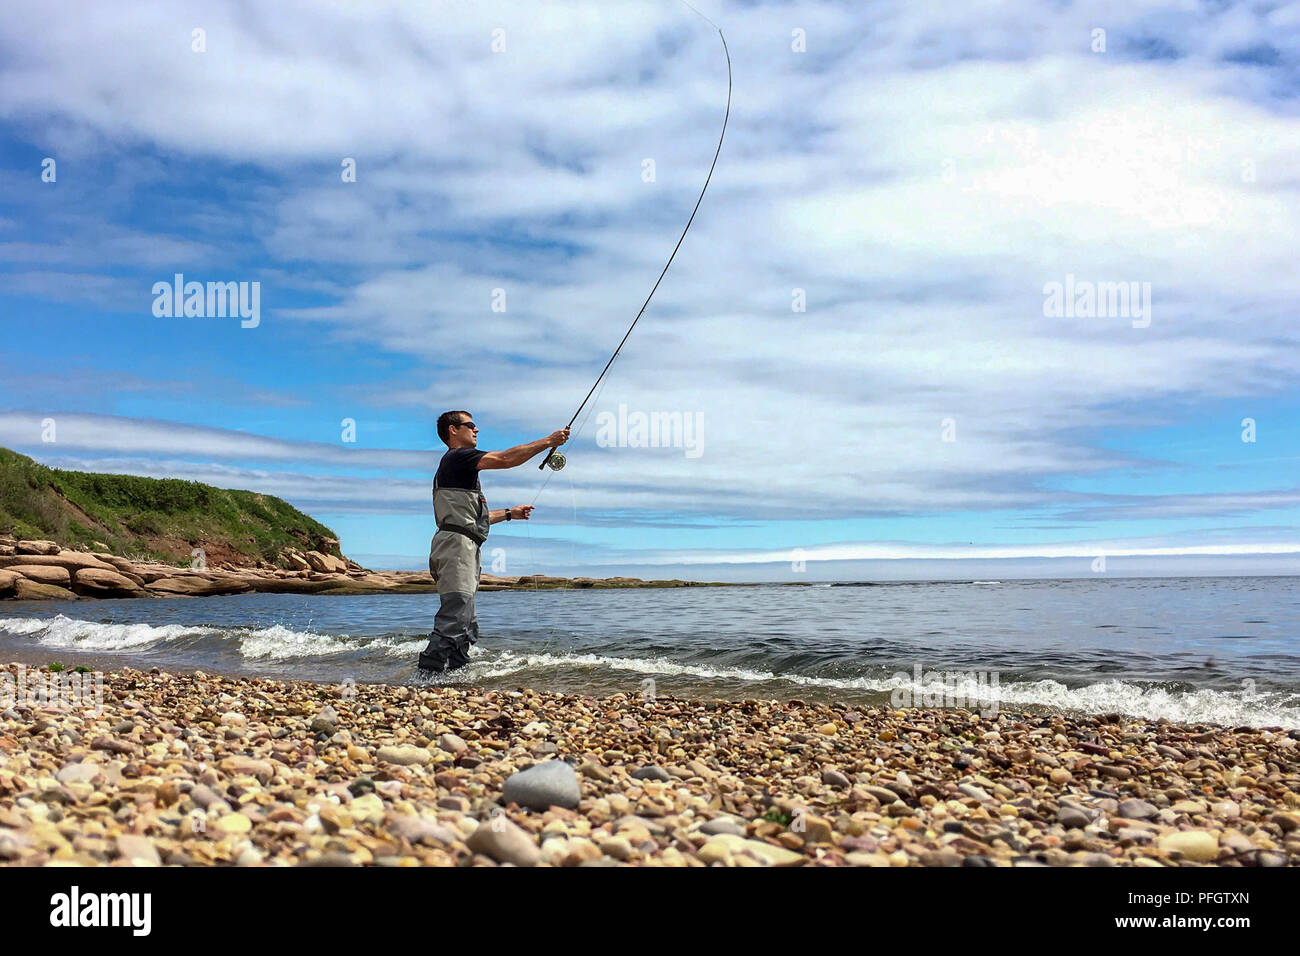 Saltwater fly fishing for Striped bass on Quebec's Gaspe Peninsula, Canada - Stock Image